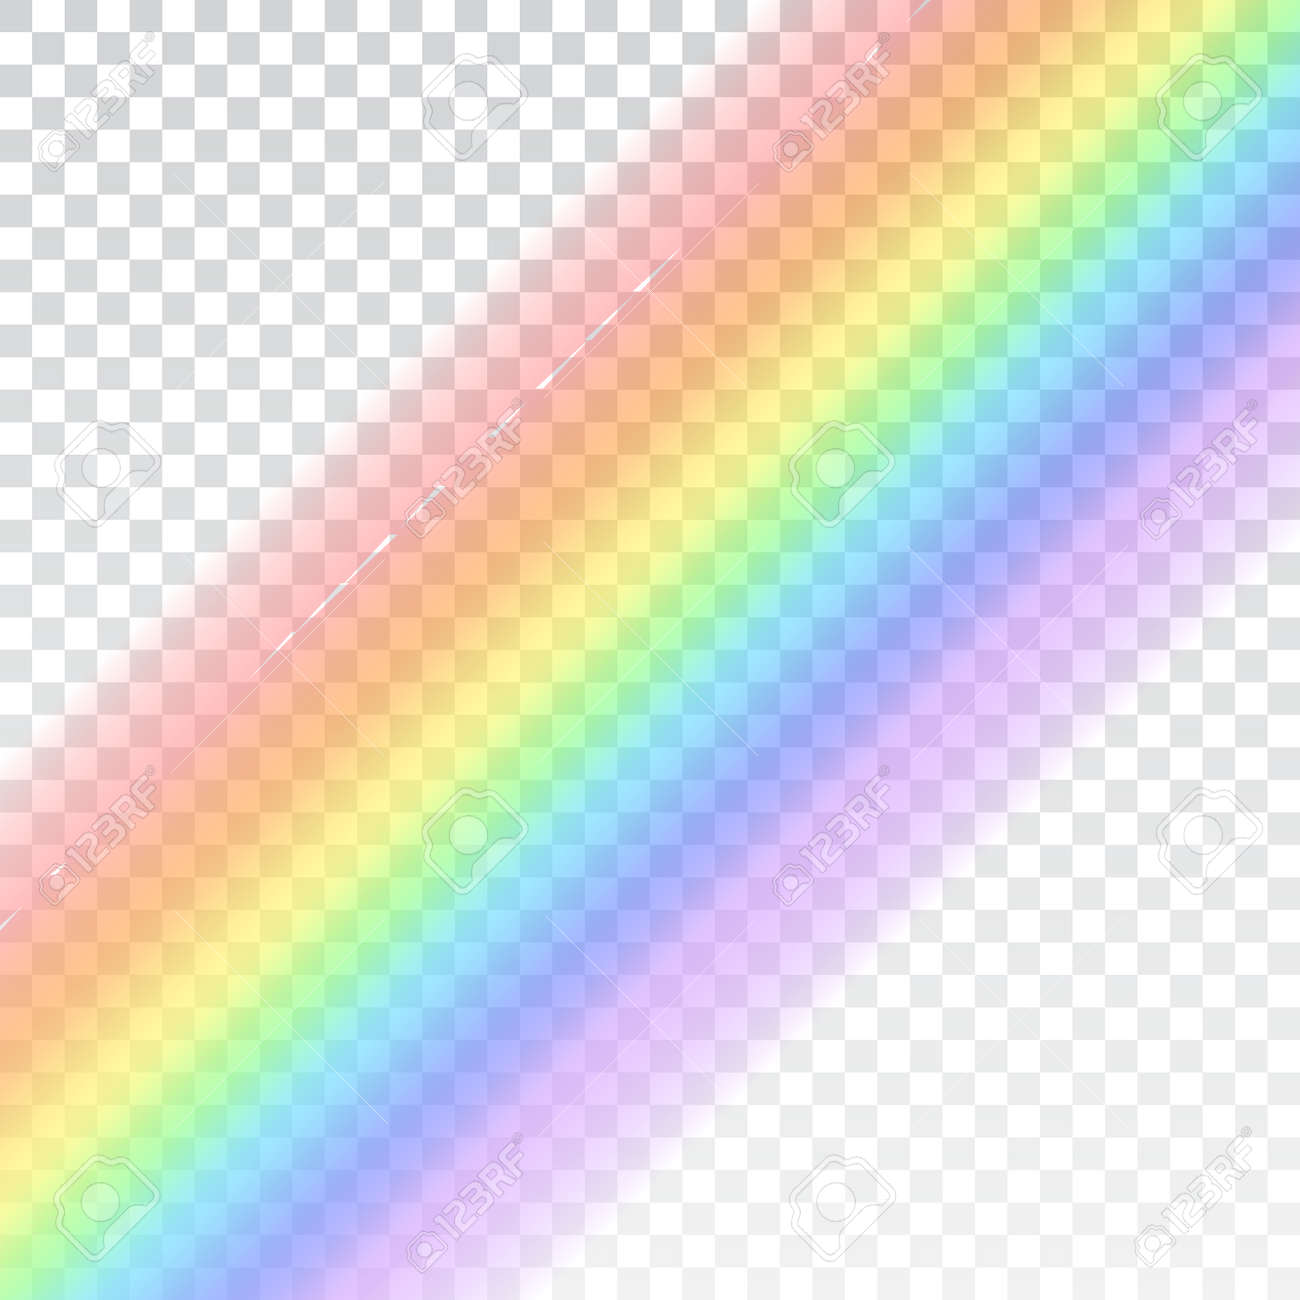 Rainbow Icon Shape Realistic Isolated On White Transparent Background Colorful Light And Bright Design